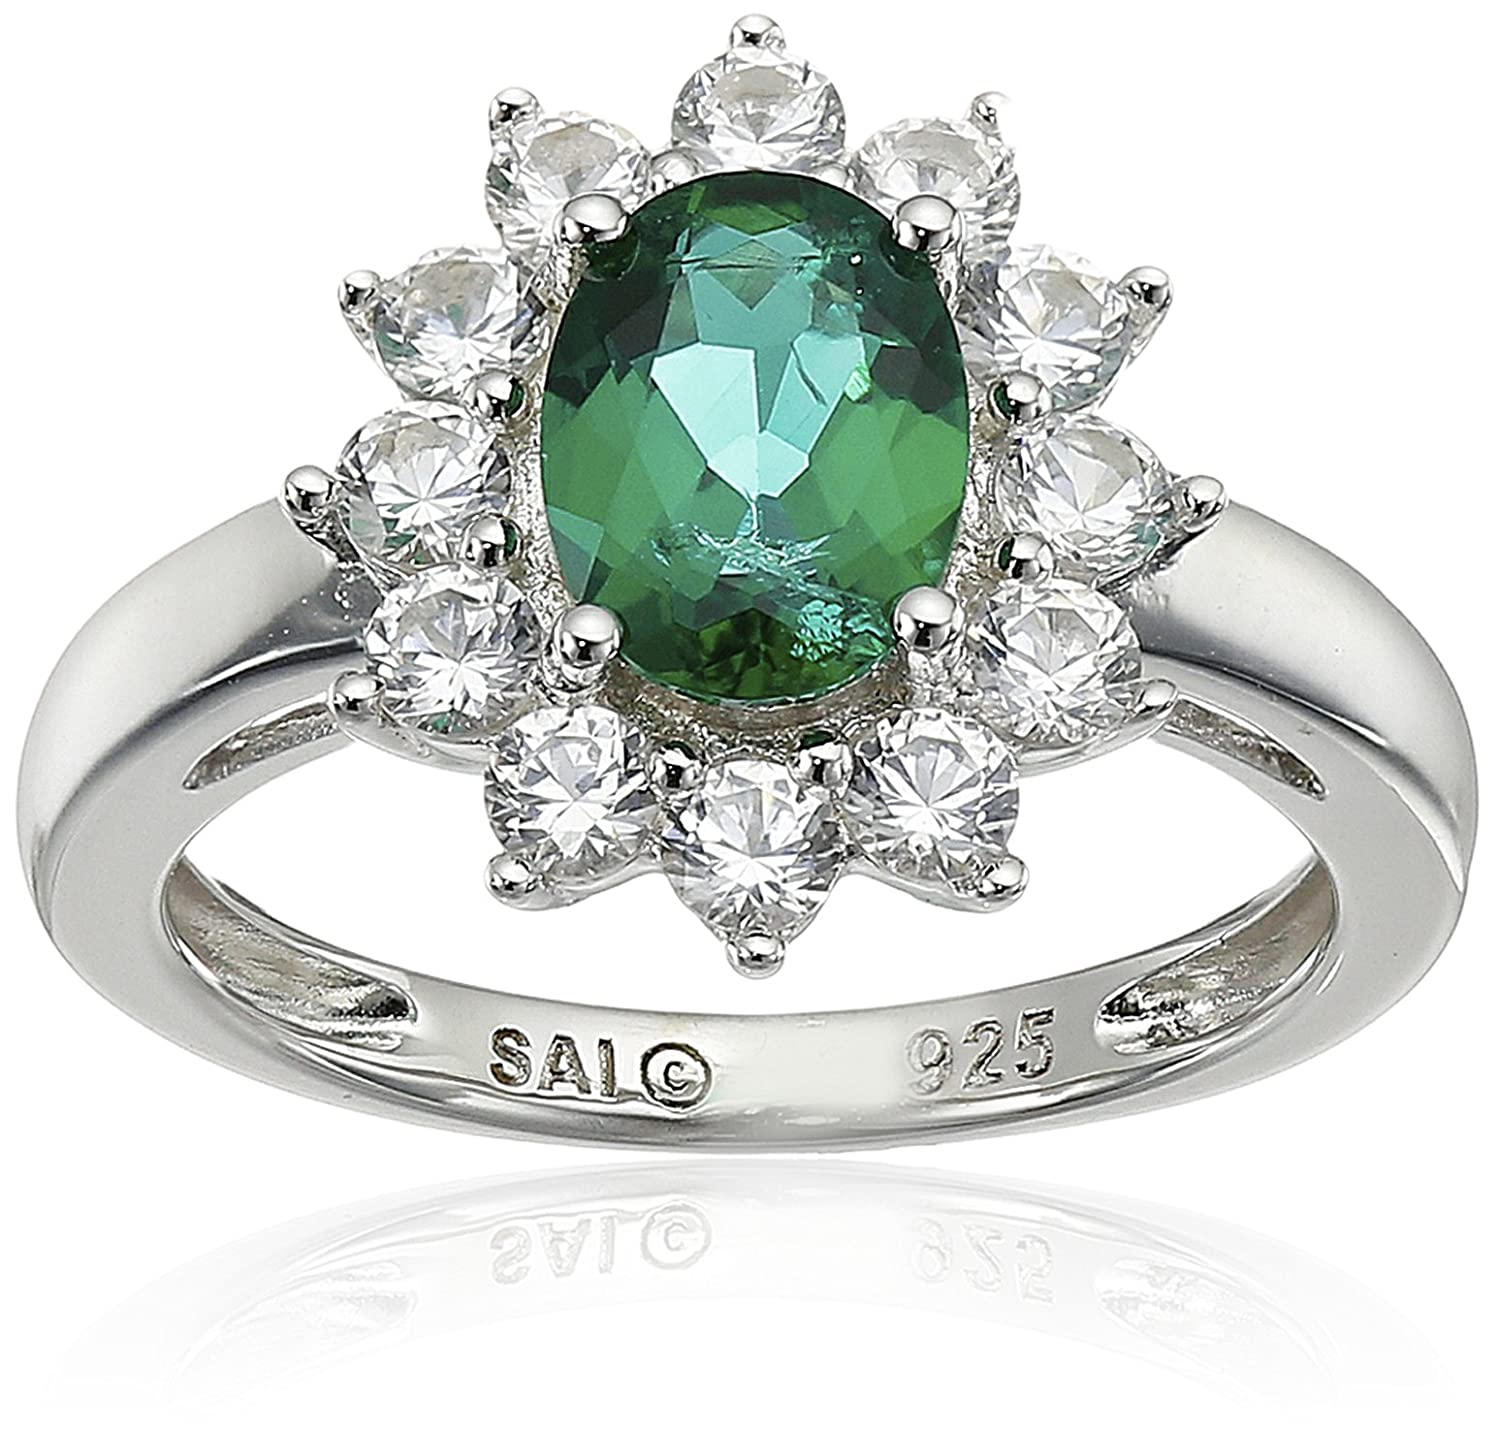 gemstone using great black such adornment turquoise is lisa green bridge zdvecah for sapphire rings as your ring